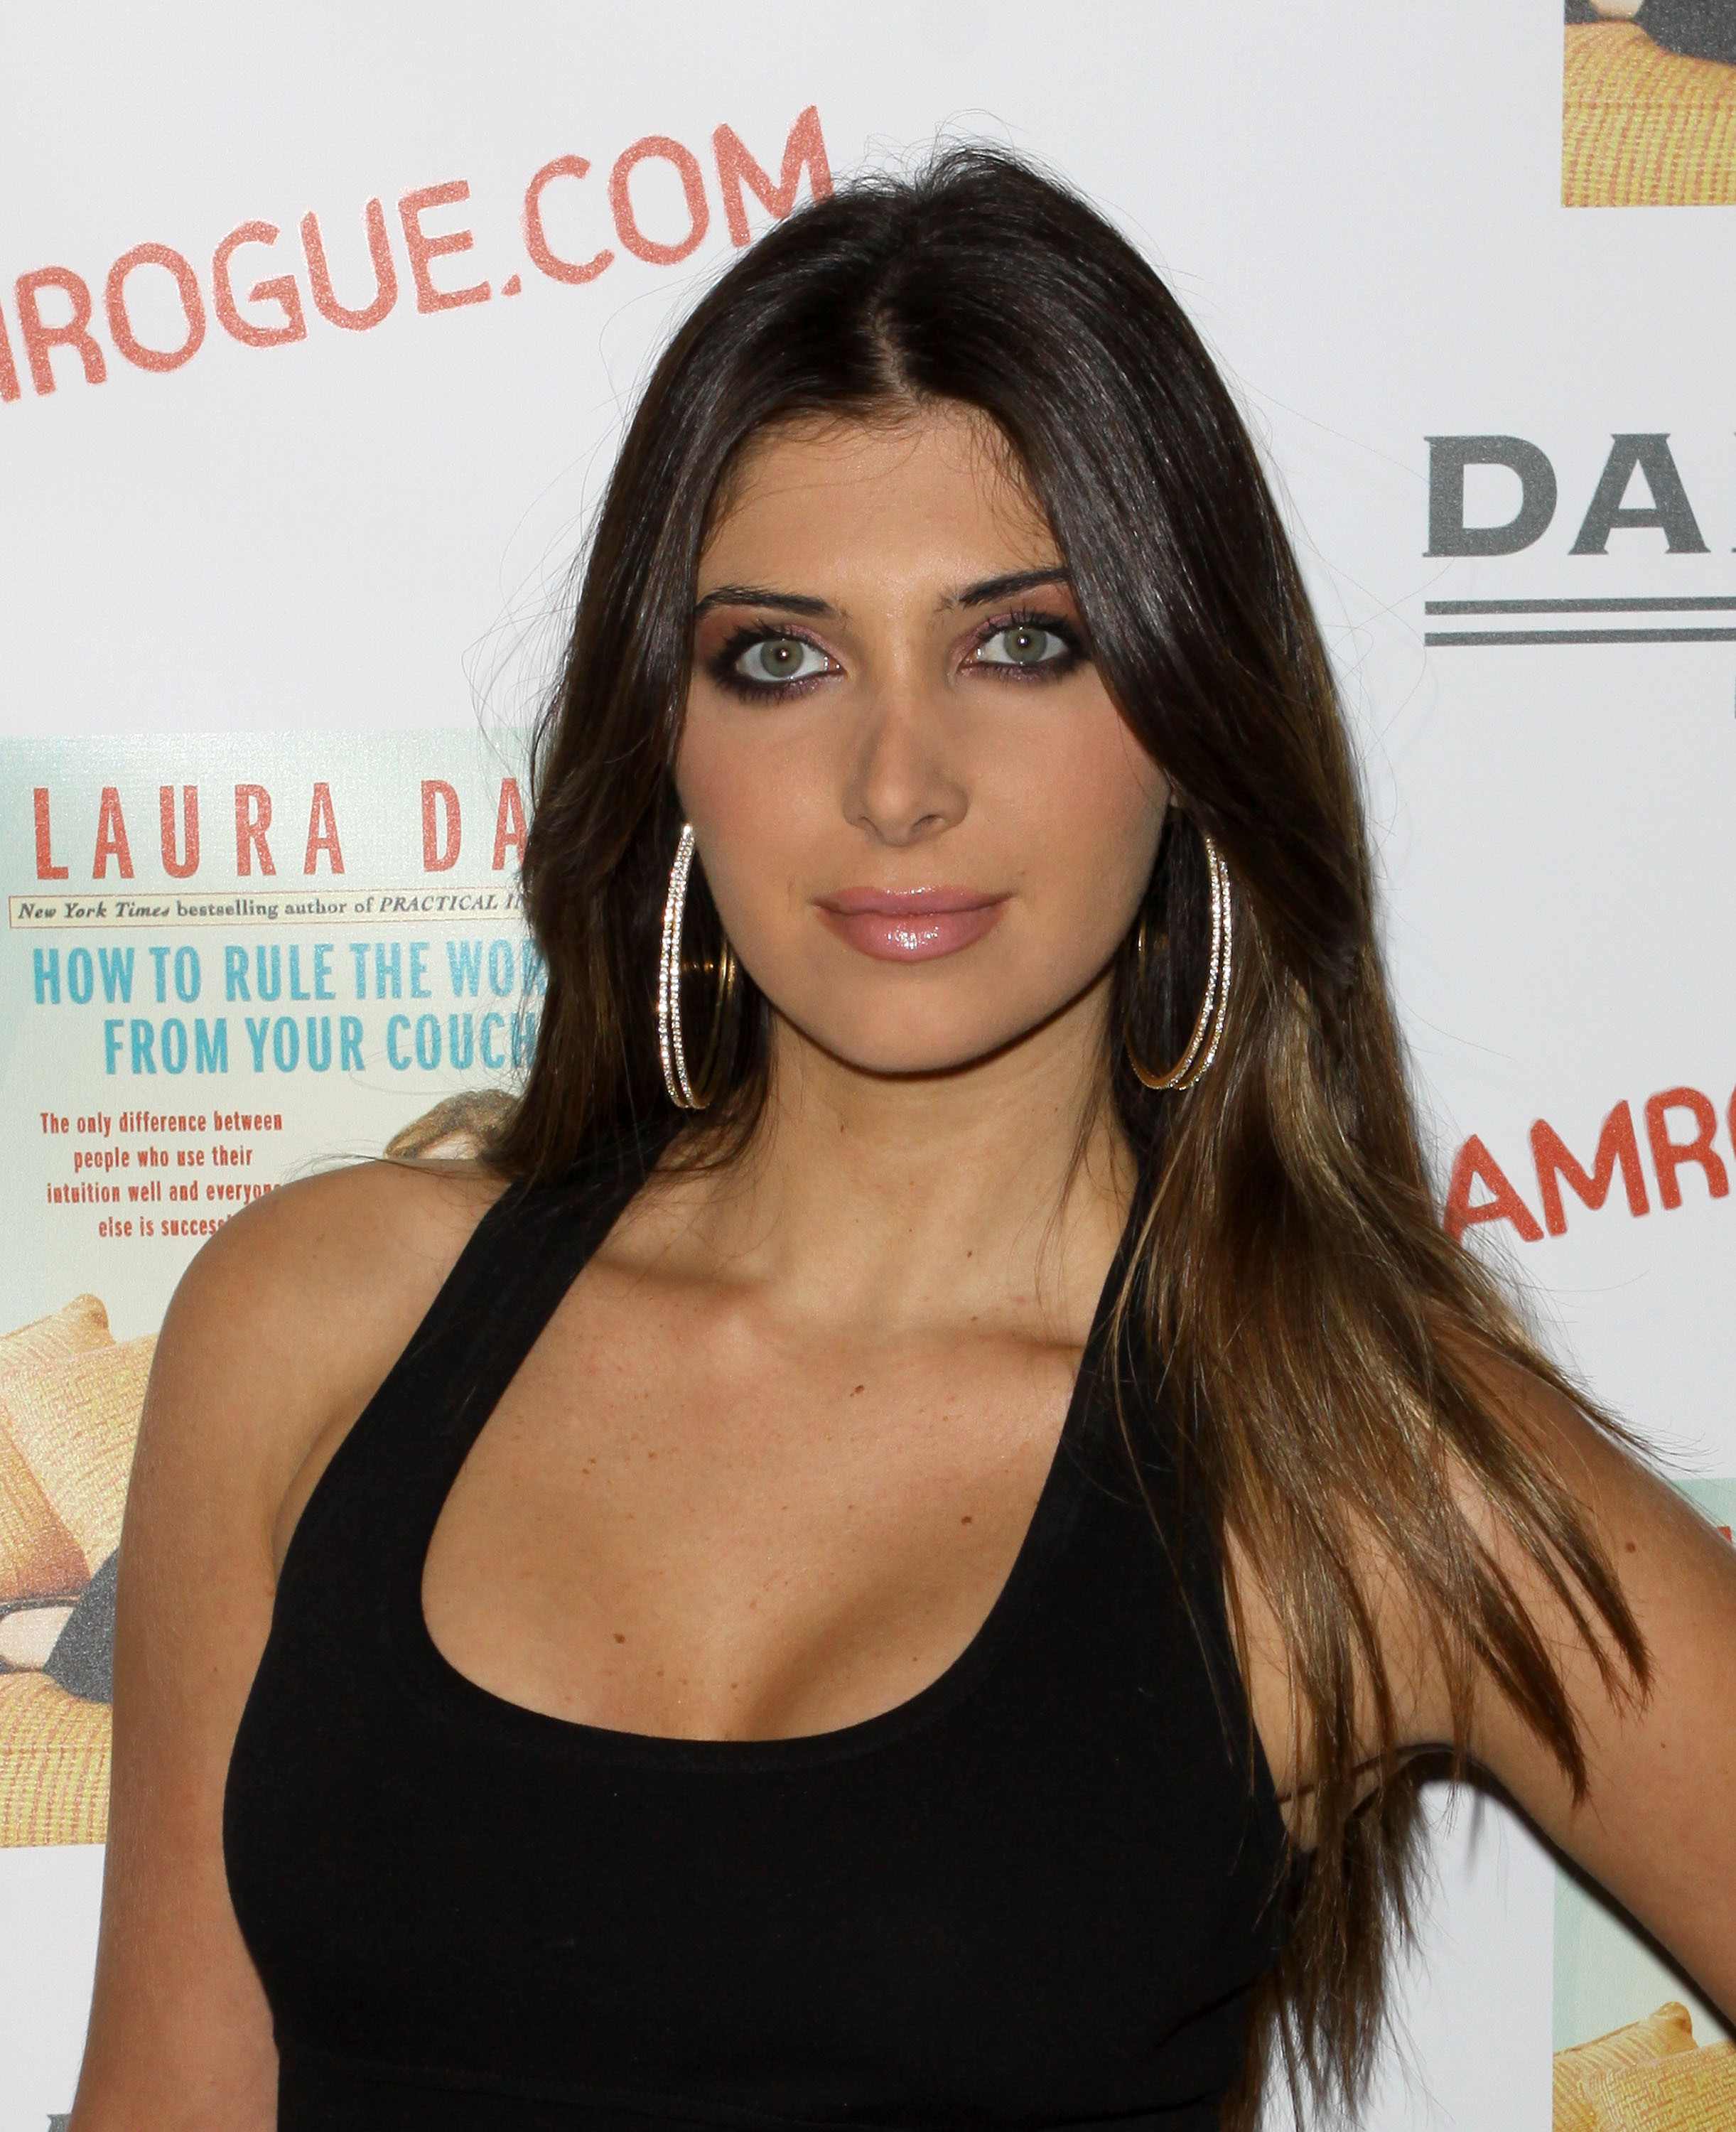 02391_celebrity-paradise.com-The_Elder-Brittny_Gastineau_2009-10-19_-_Book_Party_For_Laura_Day_122_405lo.jpg